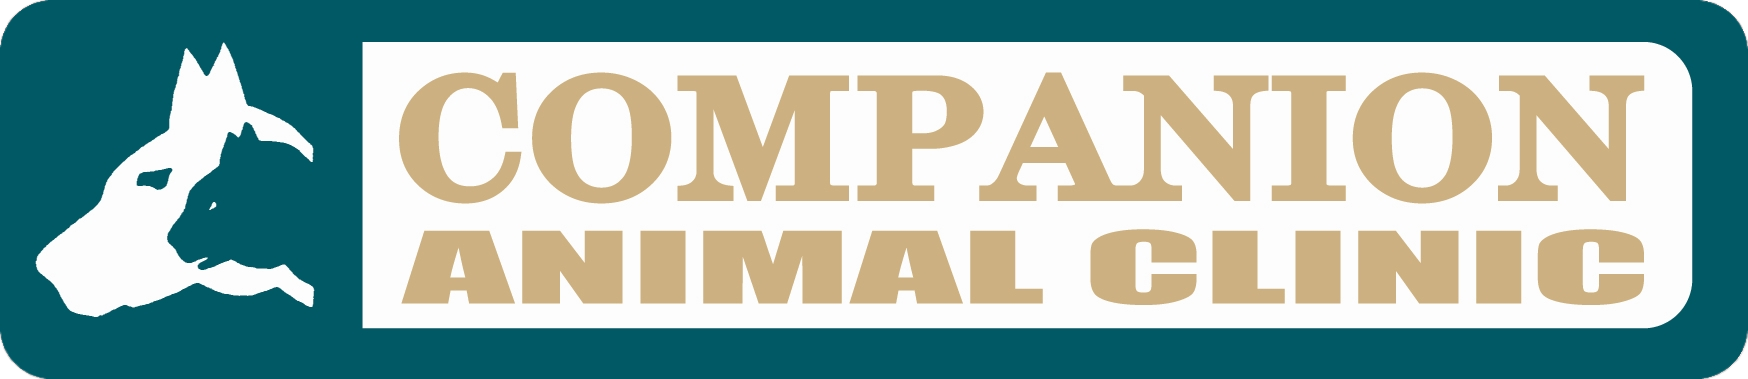 Companion Animal Logo